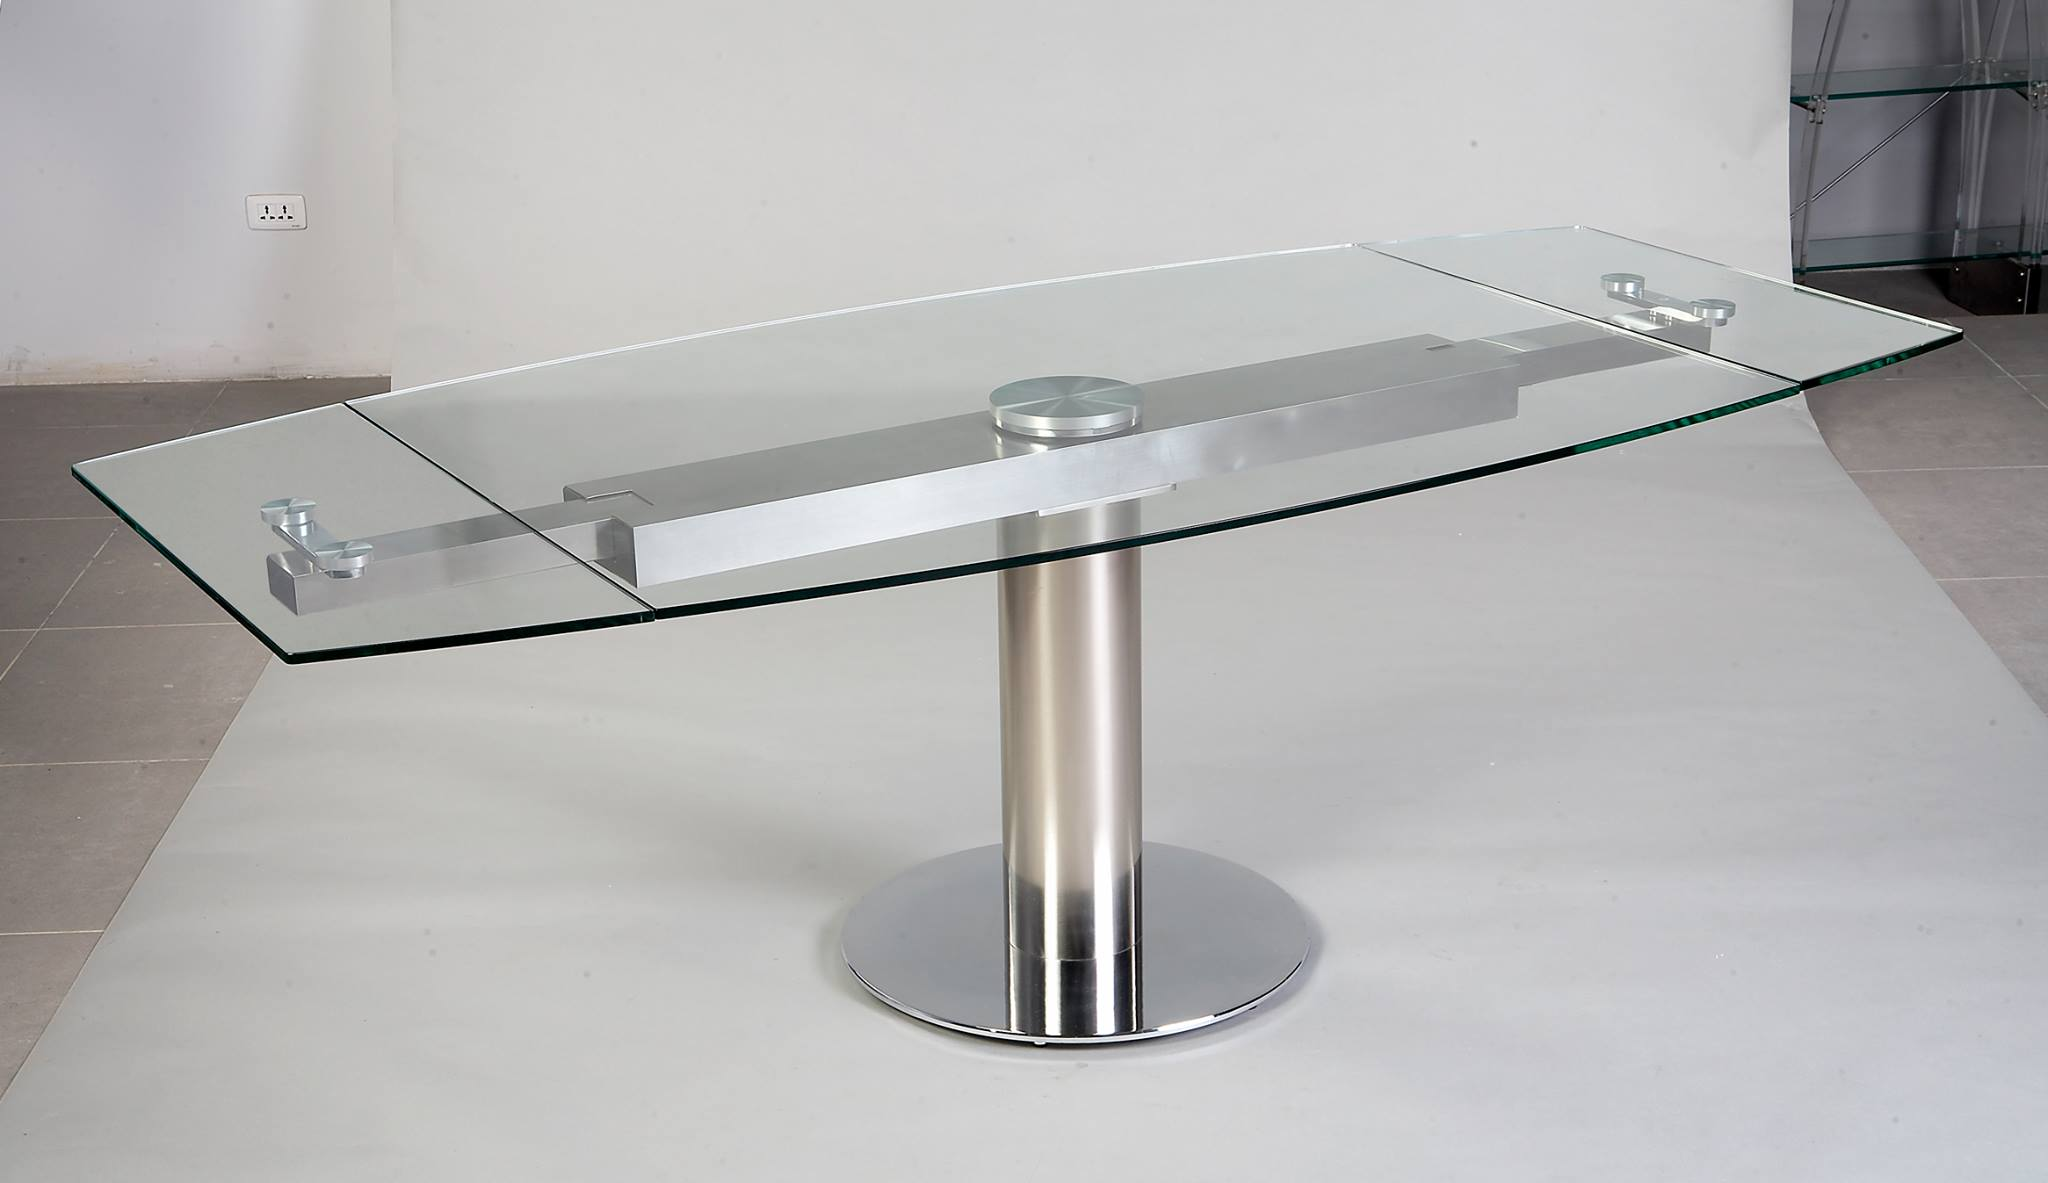 Table verre pied central allonge for Table ronde plateau verre pied central